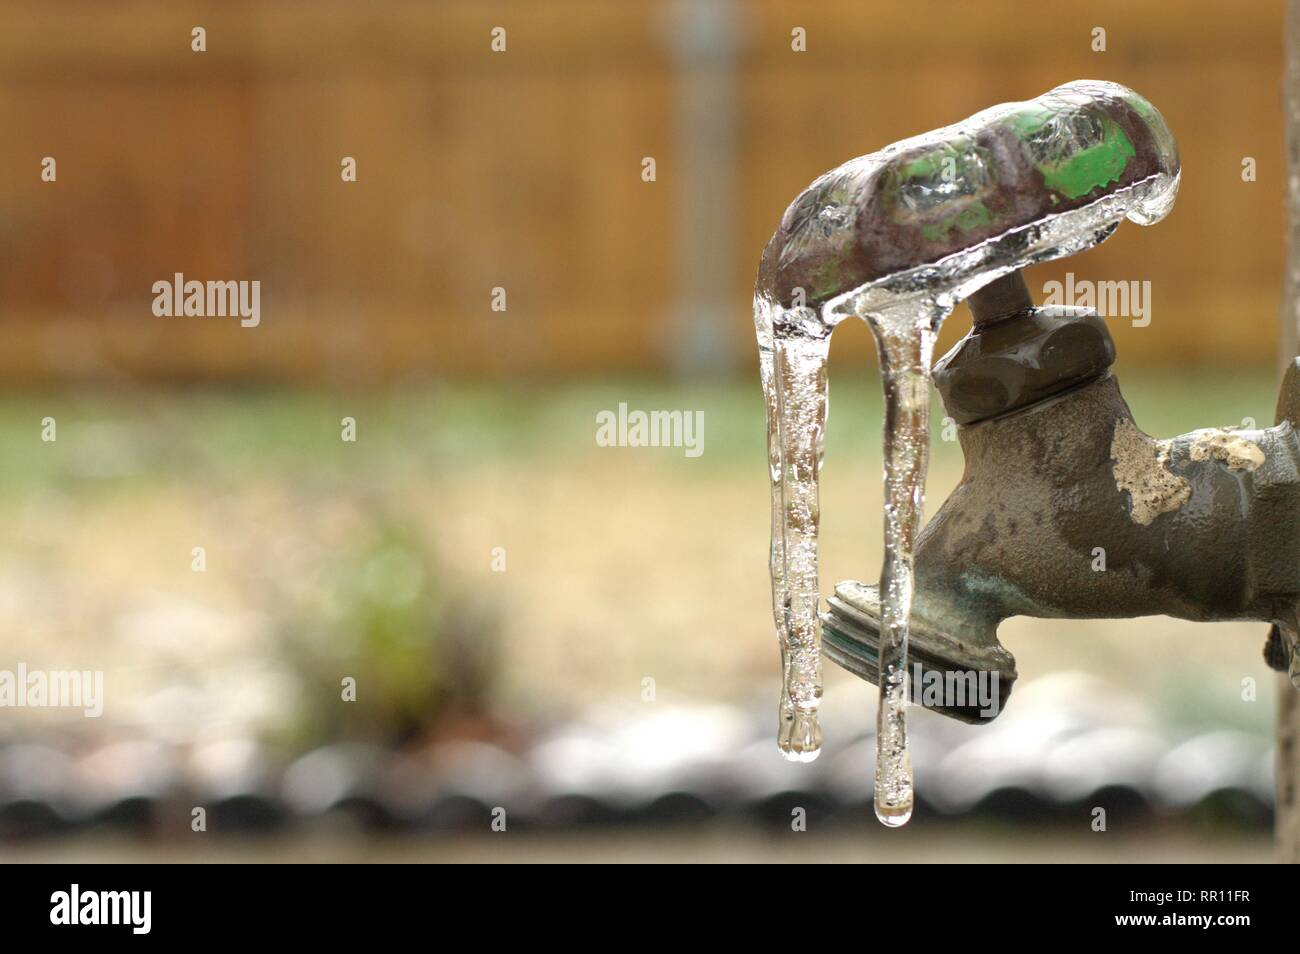 A frozen water spigot covered in ice. - Stock Image